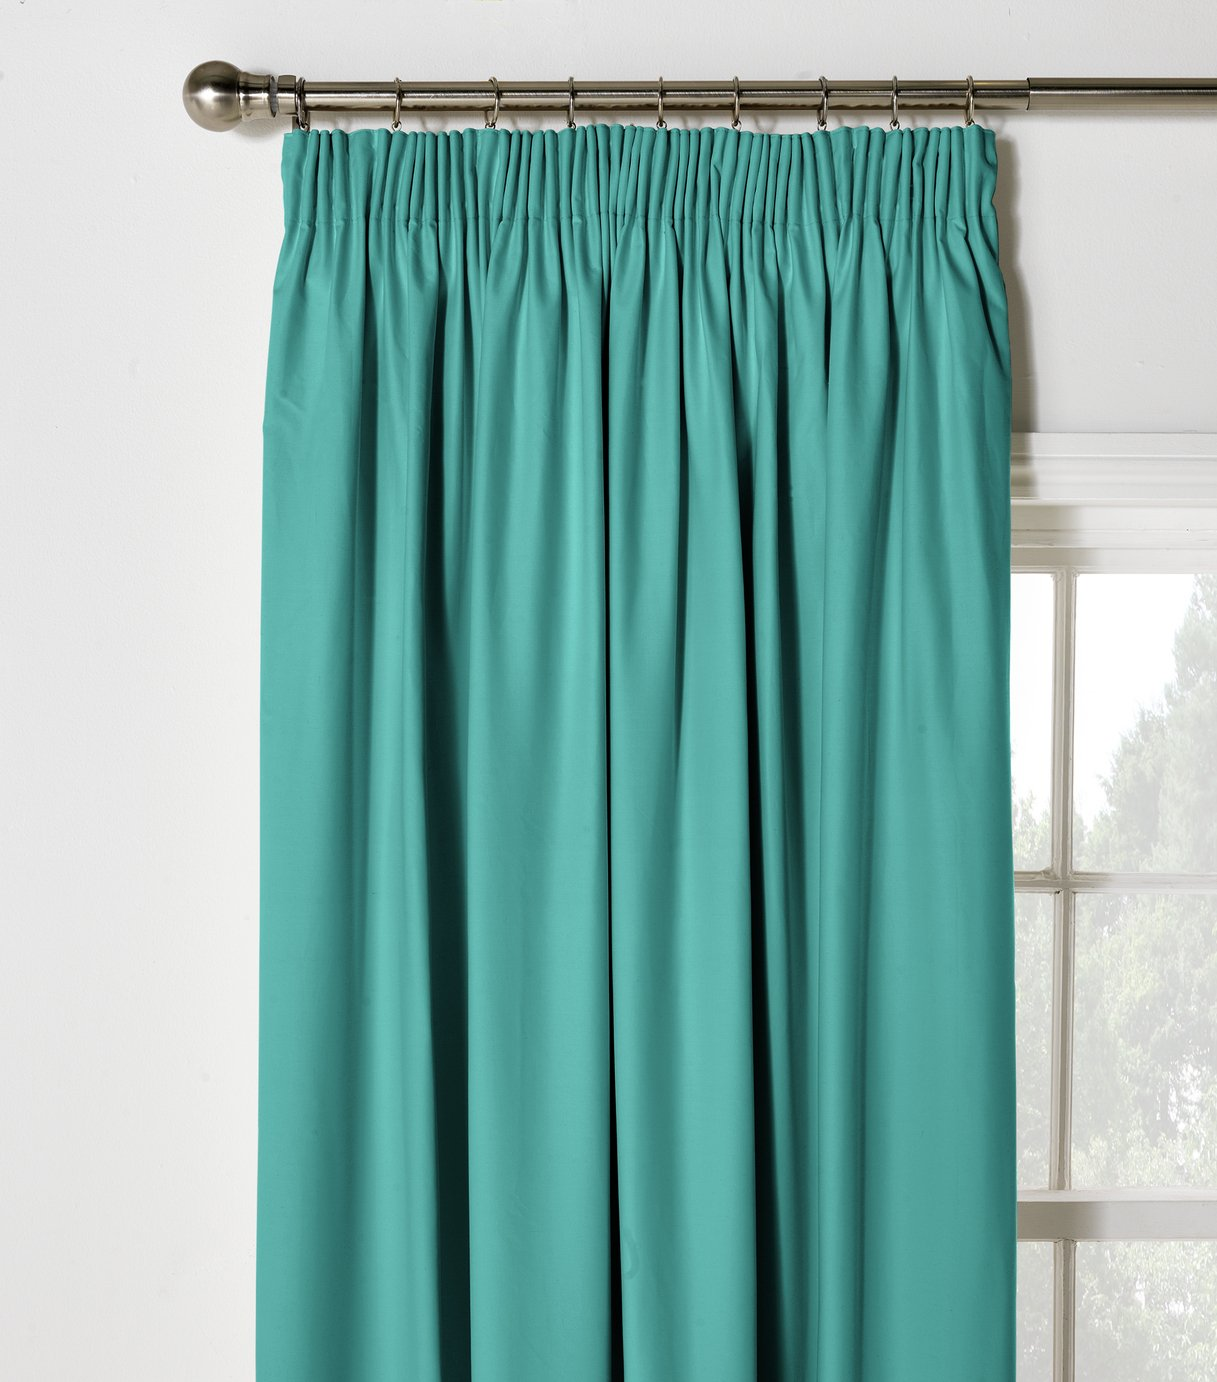 Image of ColourMatch Blackout Pencil Pleat Curtains -168x229cm - Teal